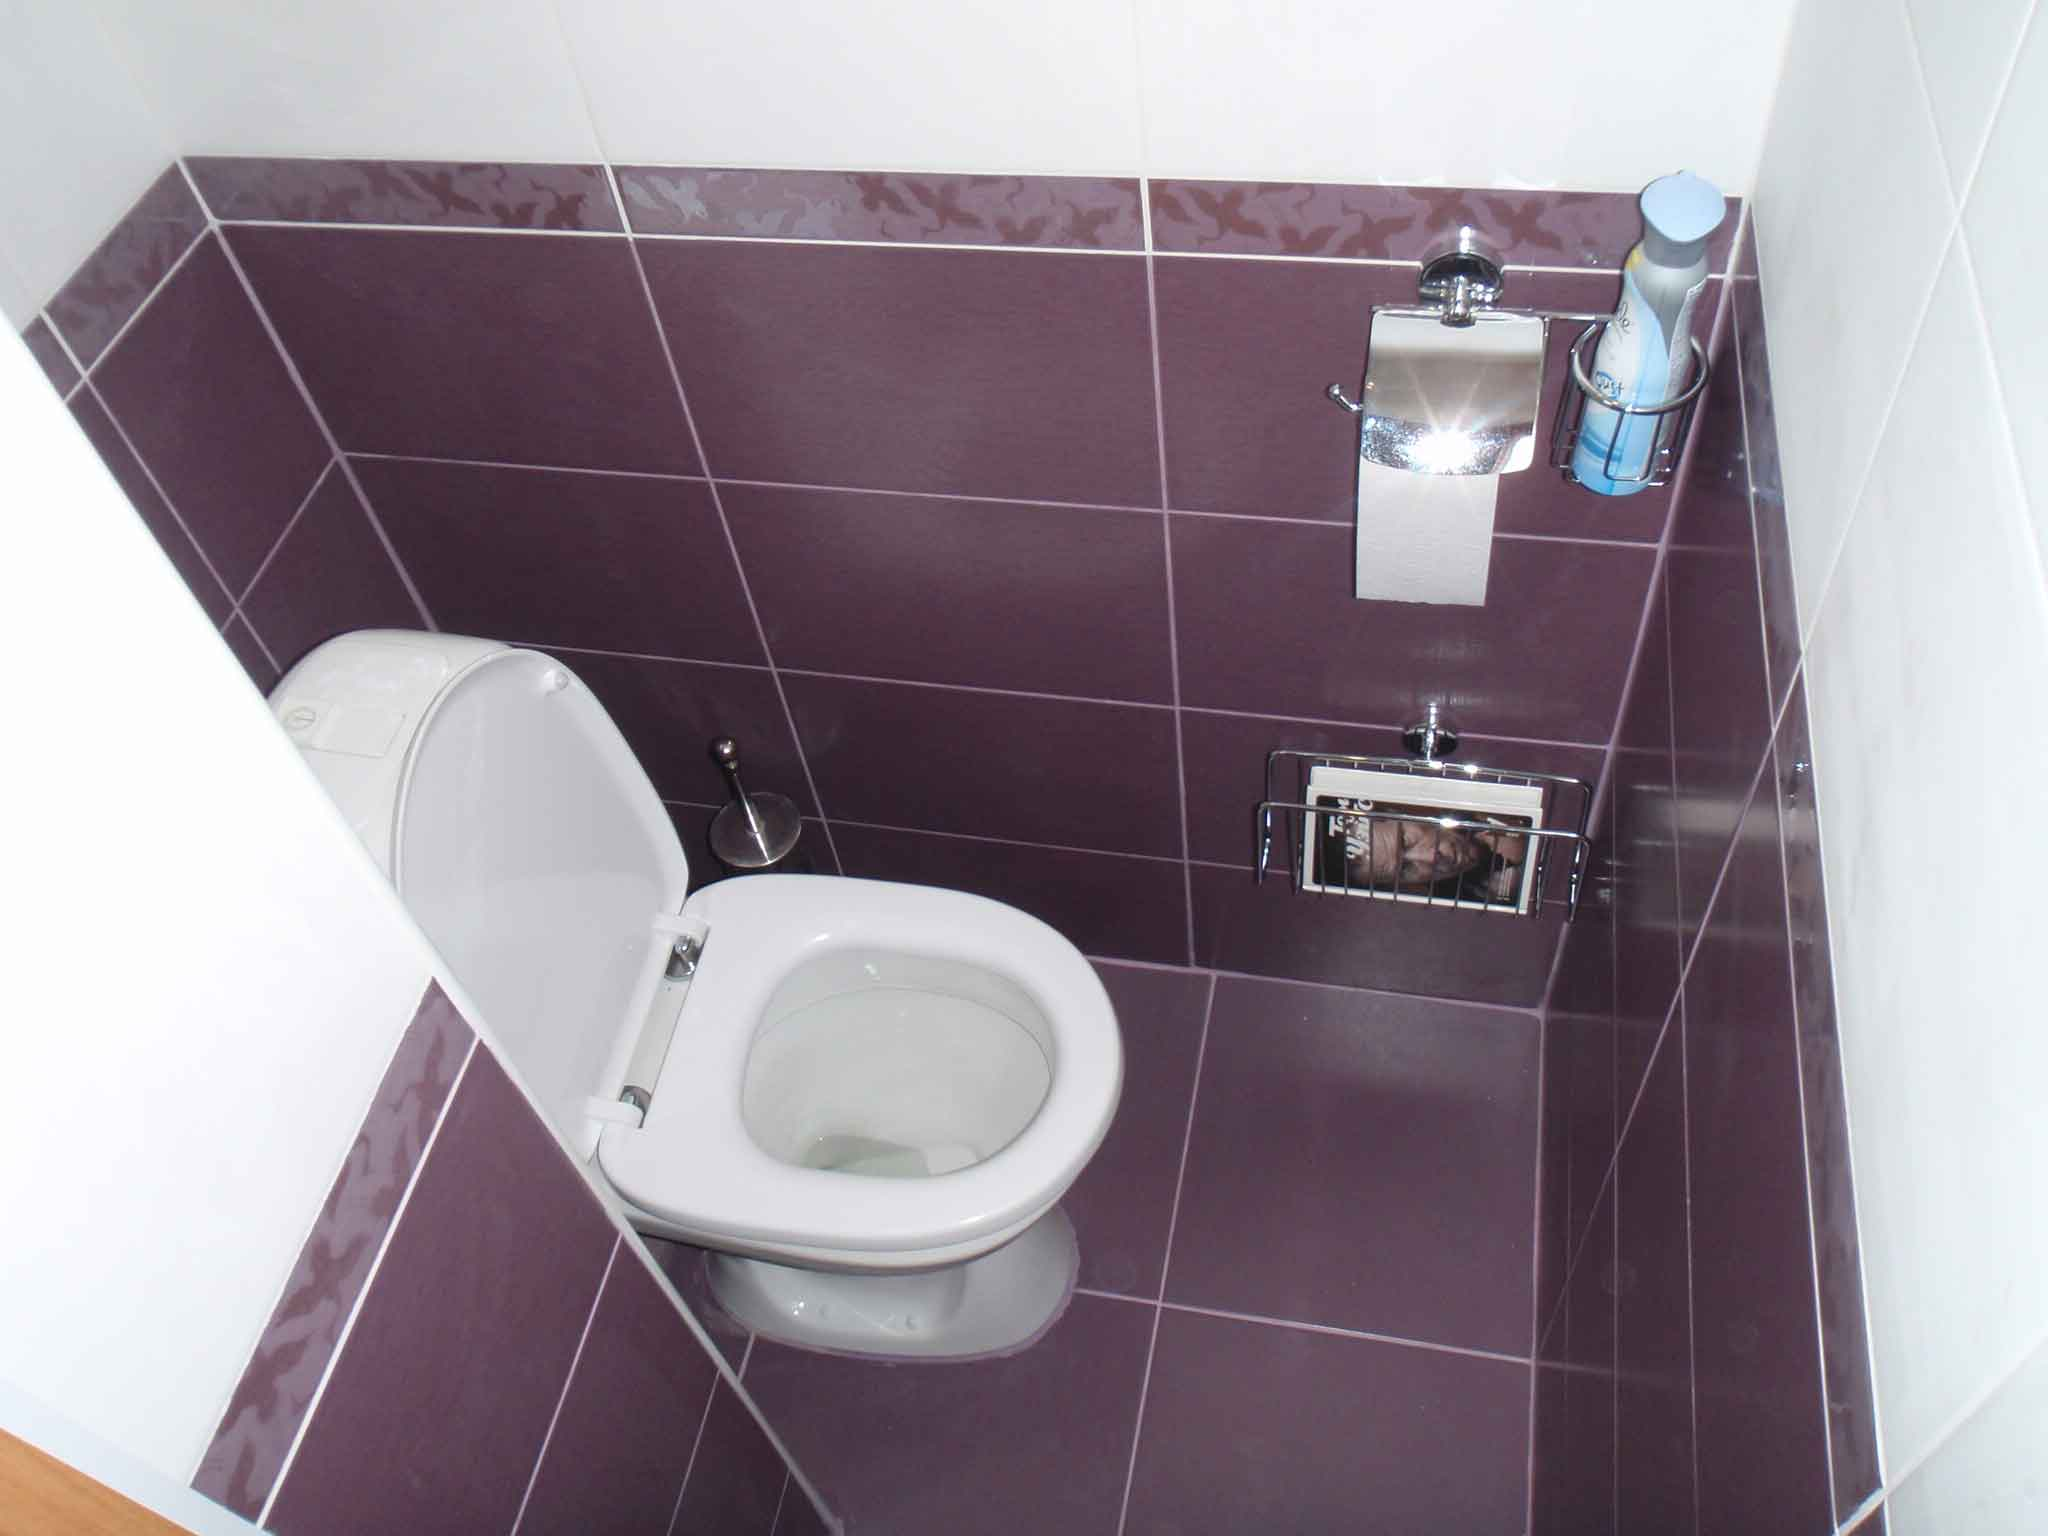 Purple and white in toilet trim